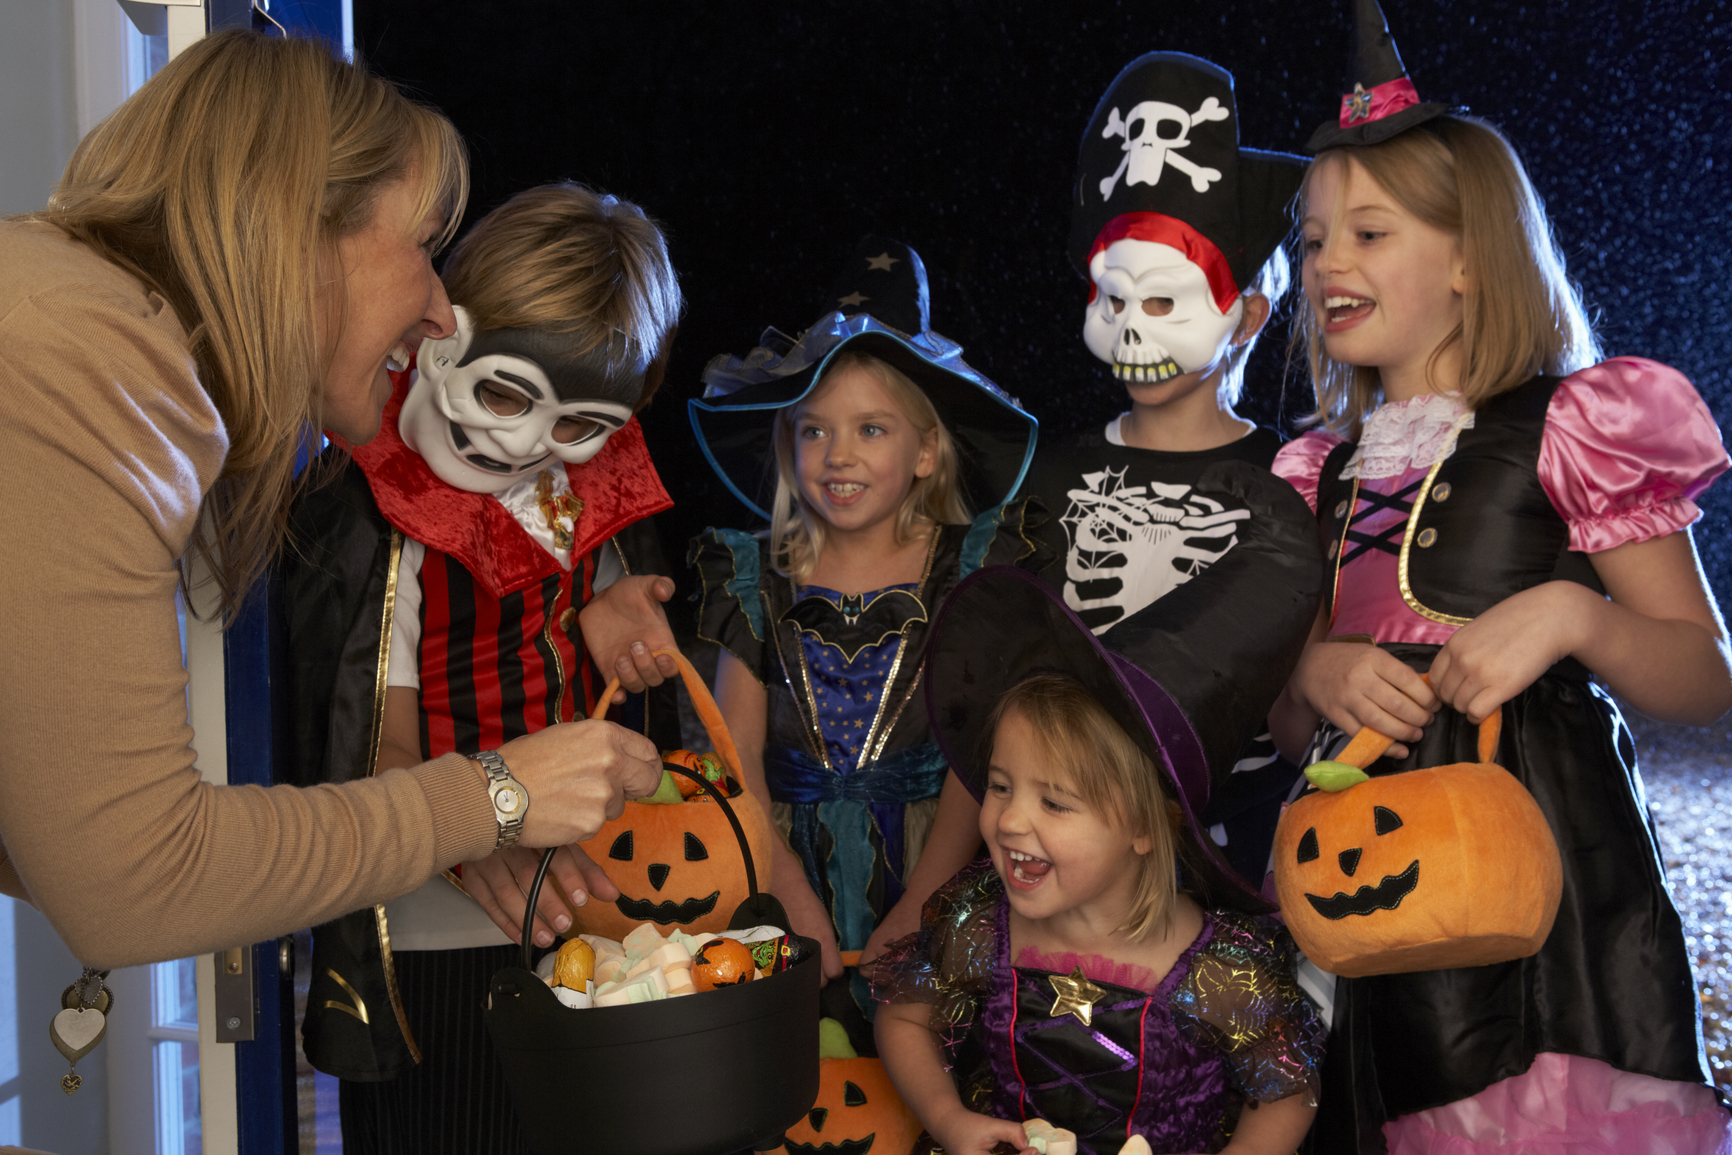 How To Prepare Your Home for Trick-or-Treaters